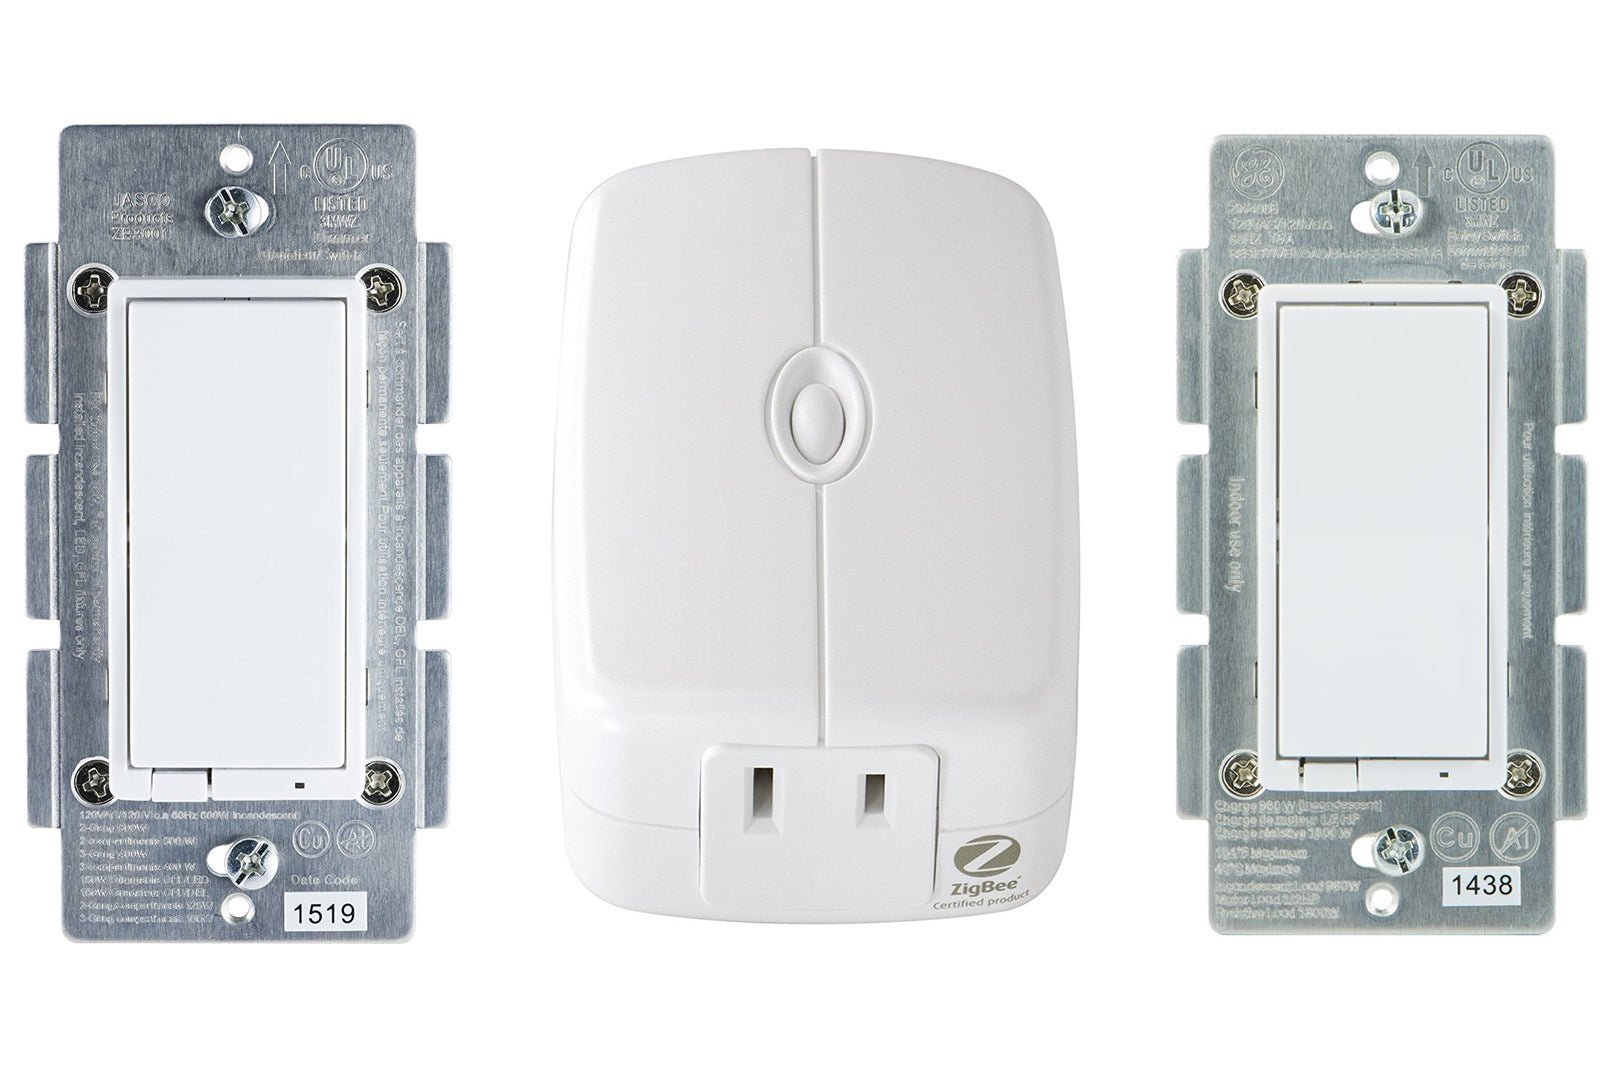 Ge Smart Lighting Review Zigbee Or Z Wave In Wall Plug Wiring Diagram For Downlights Techhive